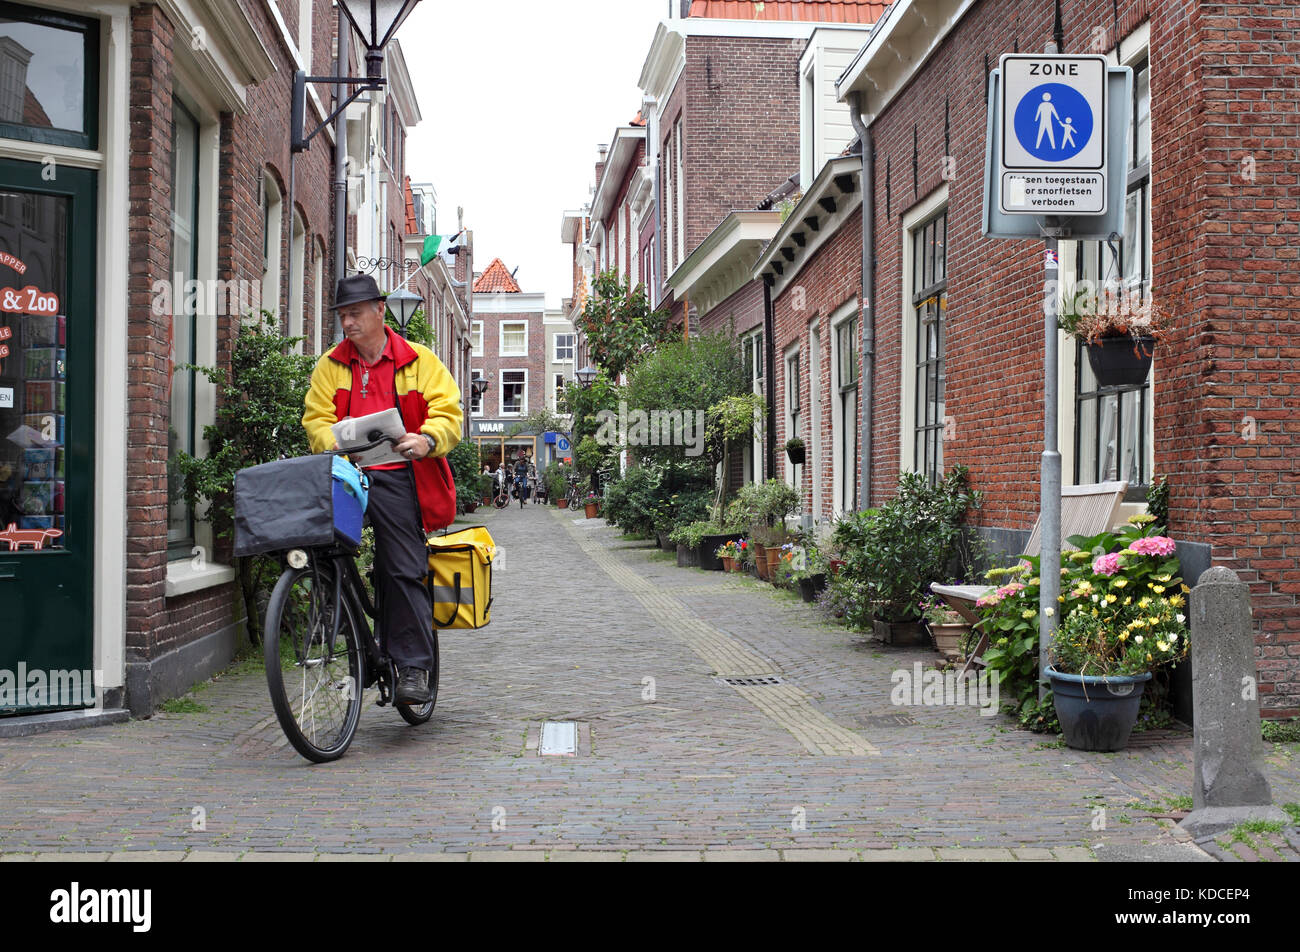 A postal worker delivering mail in a traffic-free street in Haarlem city centre, The Netherlands. - Stock Image